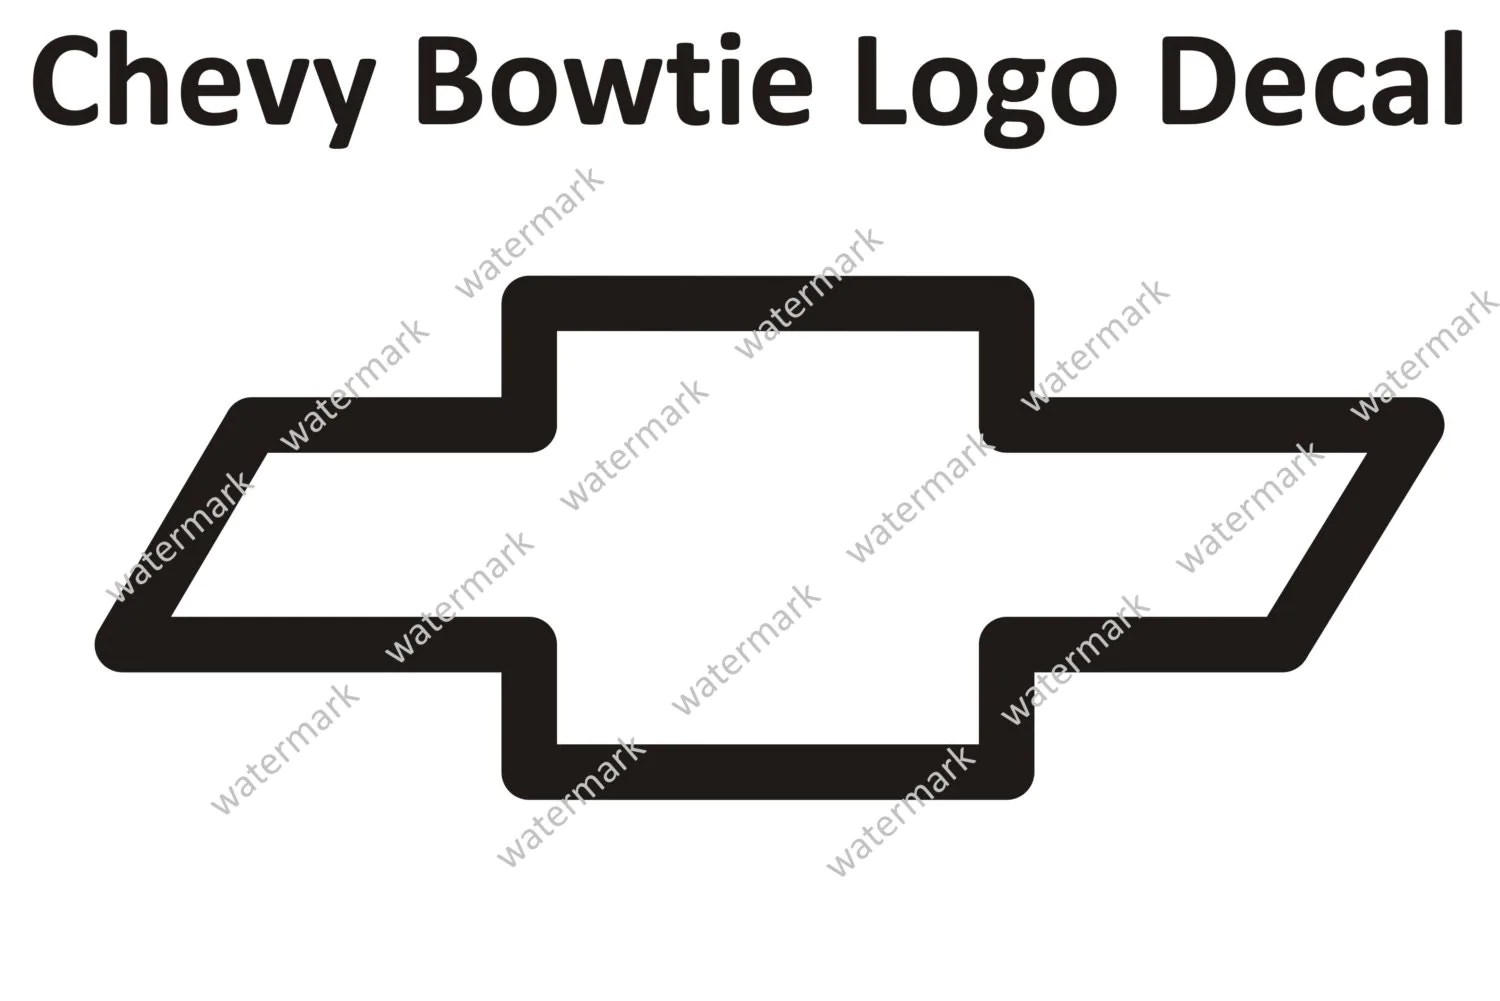 Chevy Chevrolet Bowtie Logo Decal Sticker Large By Robnmon